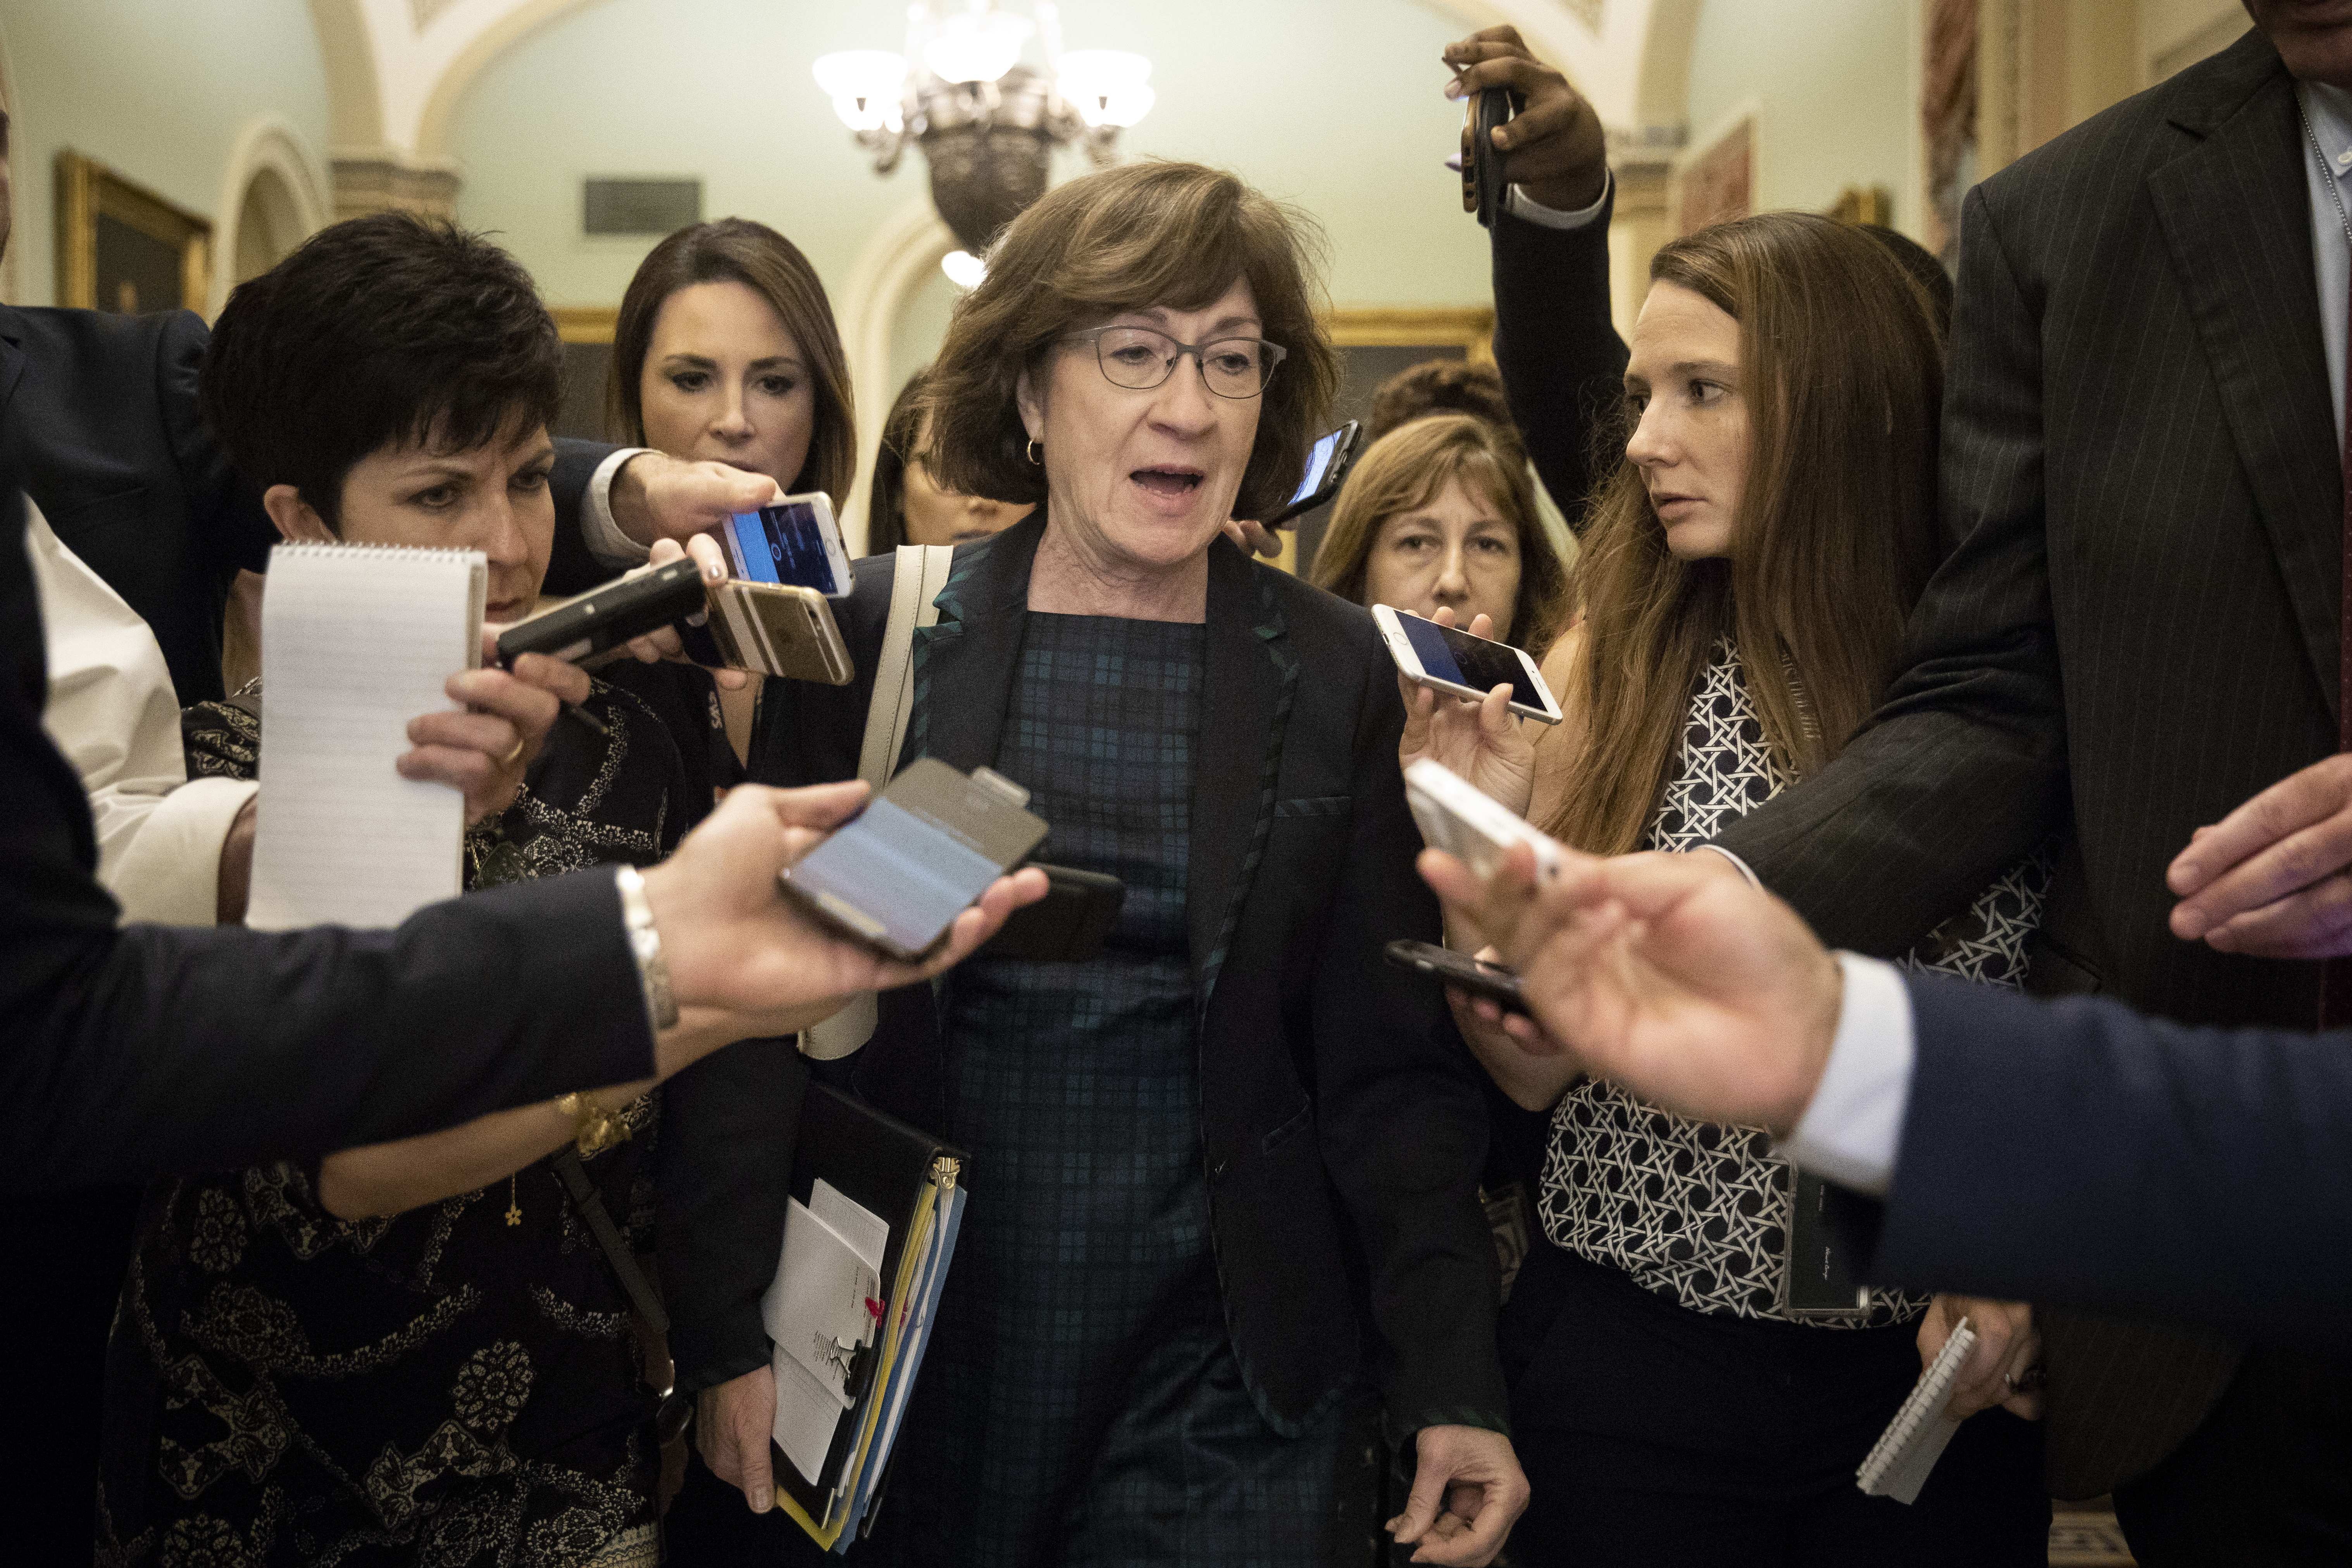 Sen. Susan Collins (R-ME) is surrounded by reporters on September 26, 2018 ahead of Christine Blasey Ford's testimony before the Senate Judiciary Committee. (Drew Angerer/Getty Images)